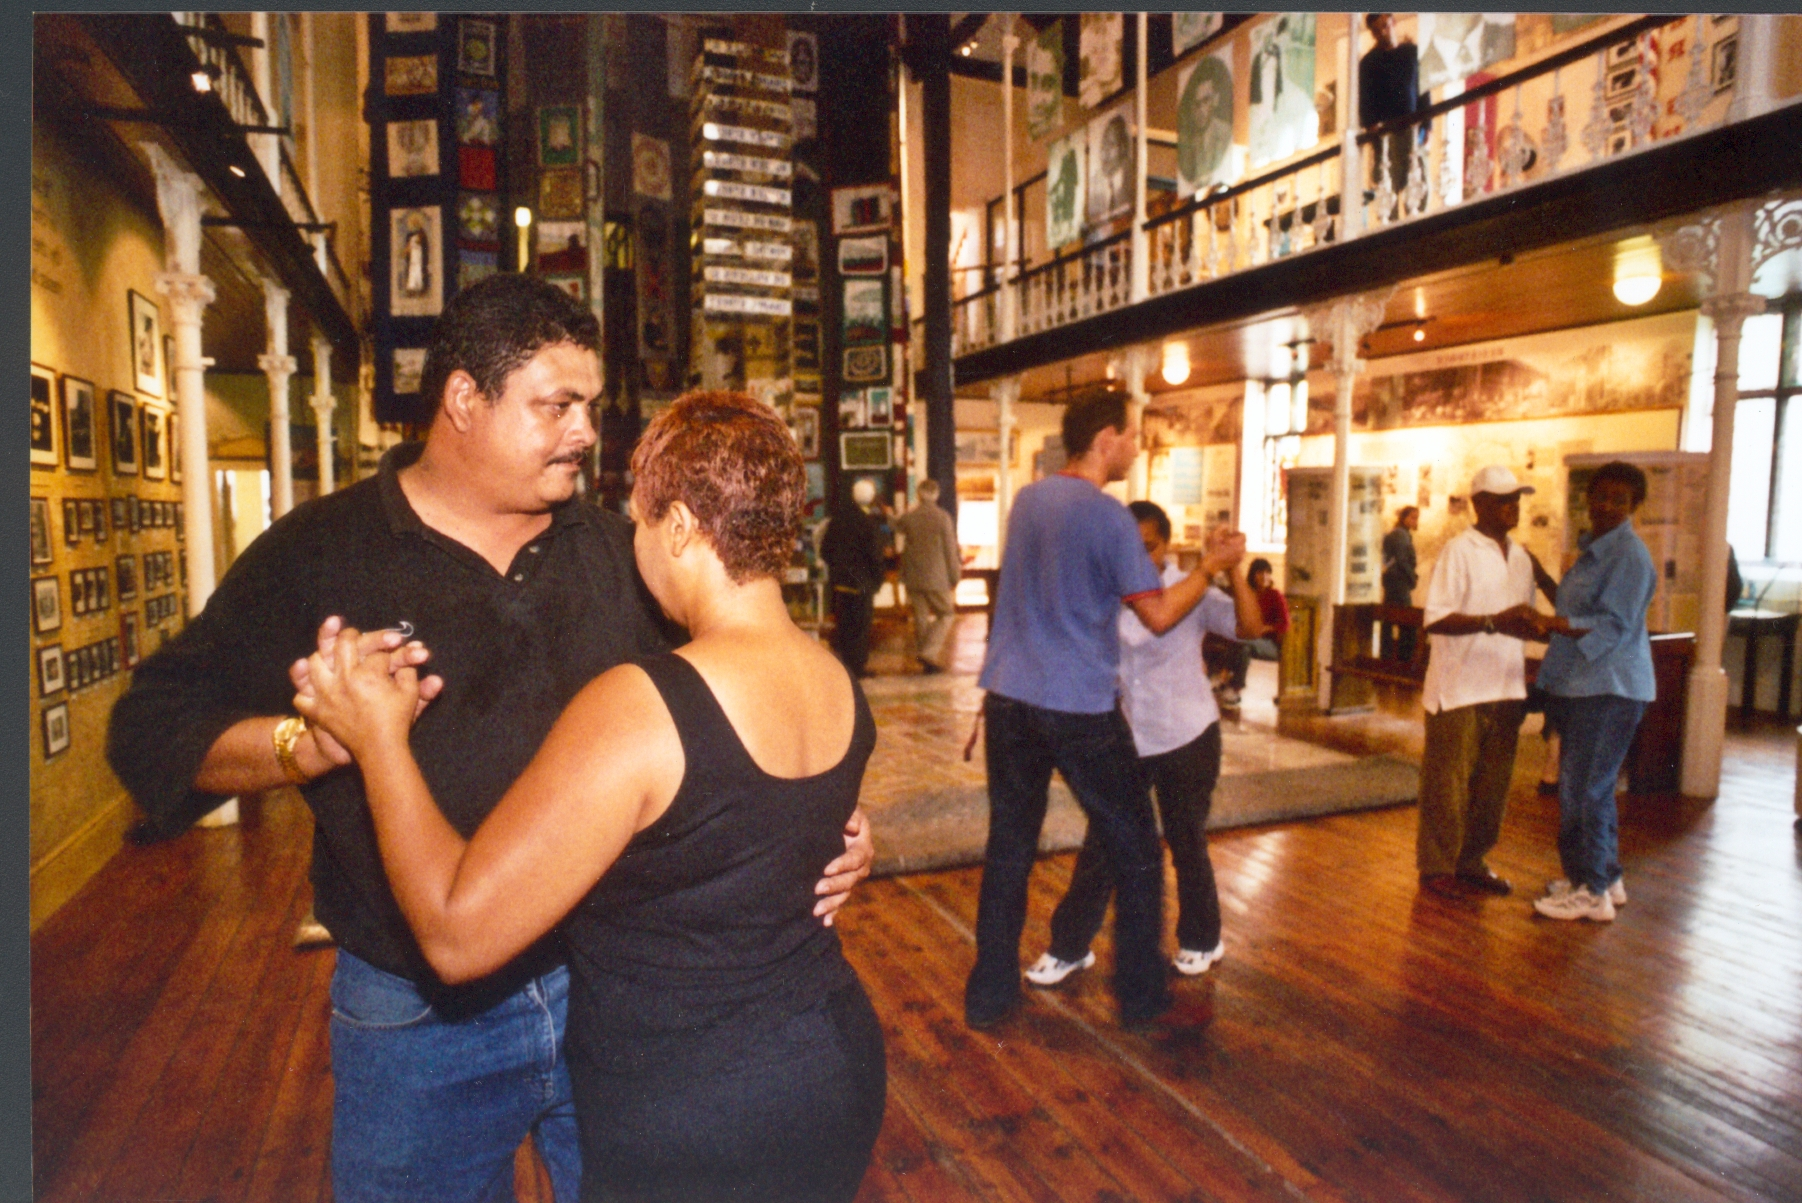 Square dancing in the District Six Museum, a community museum about forced removals in Cape Town.  Photograph Garth Stead